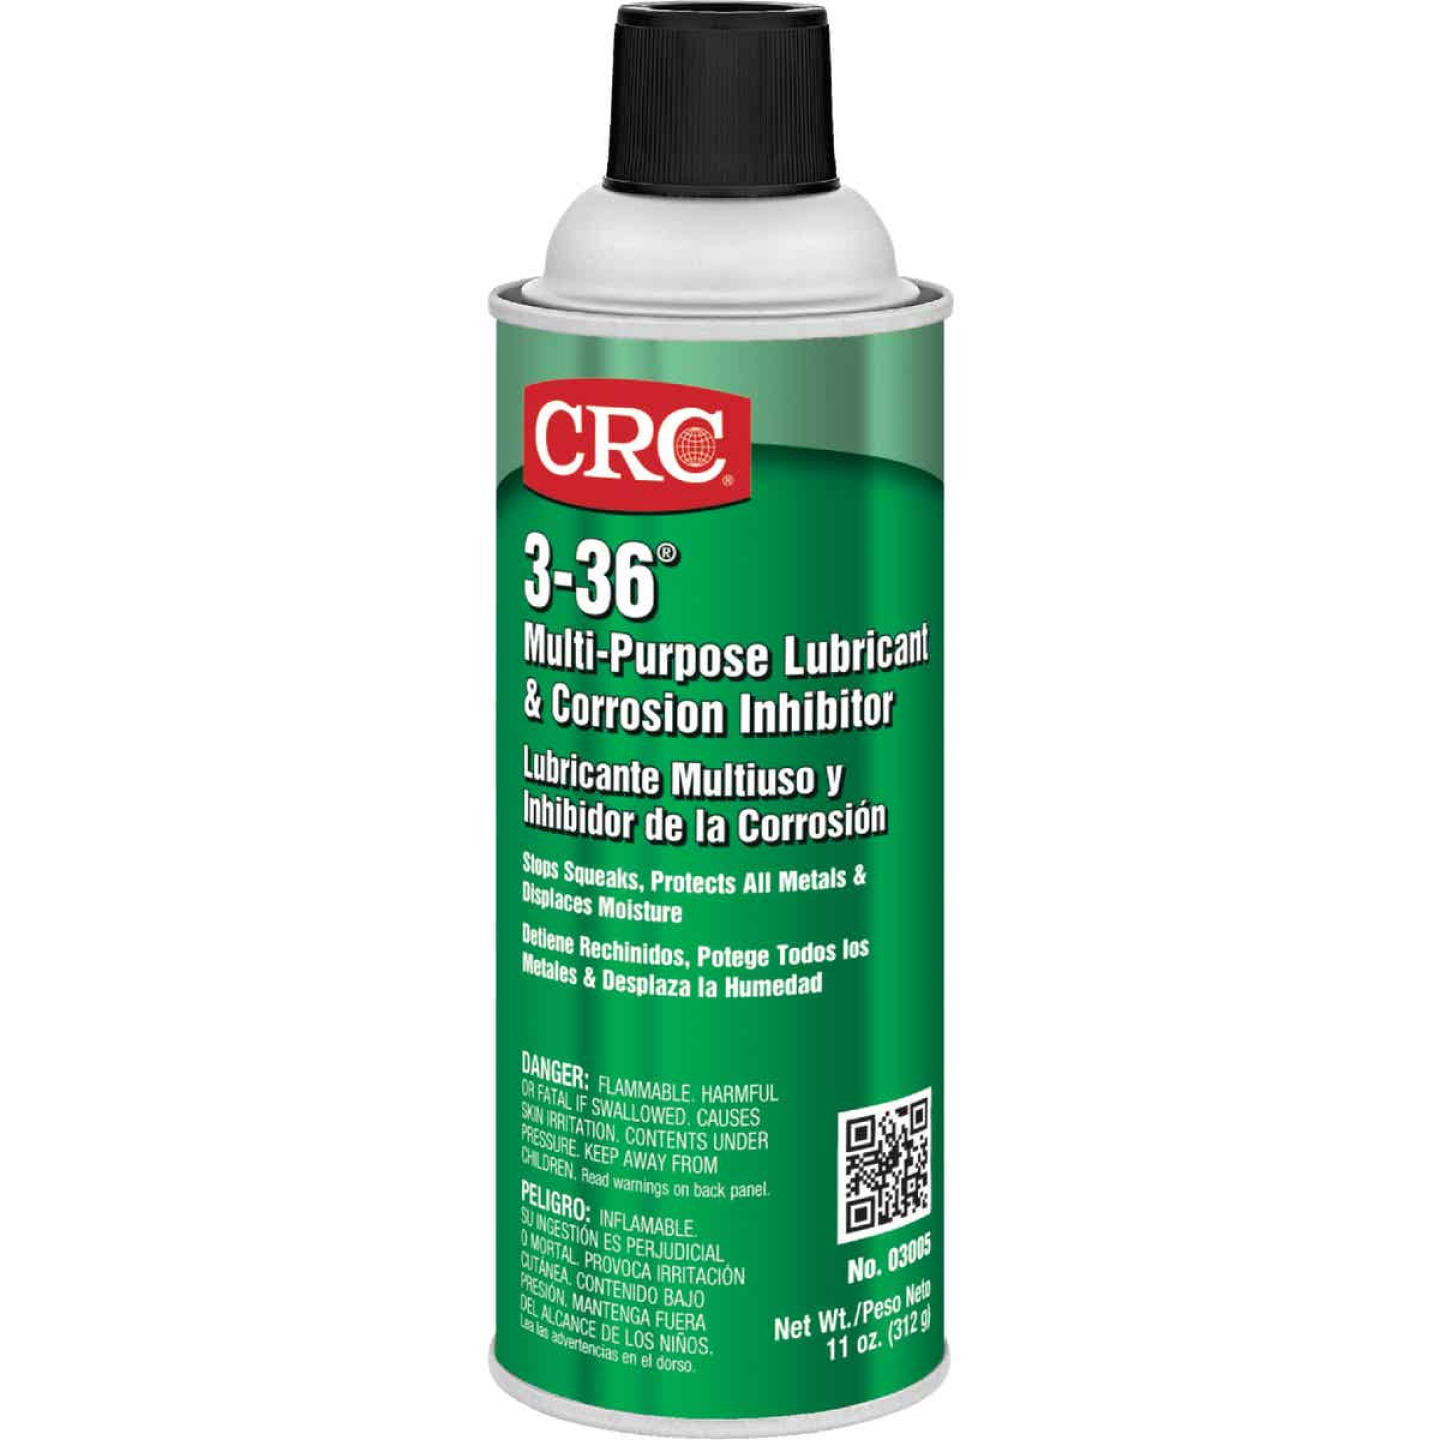 CRC Industrial 3-36 11 Oz. Aerosol Multi-Purpose Lubricant Image 1